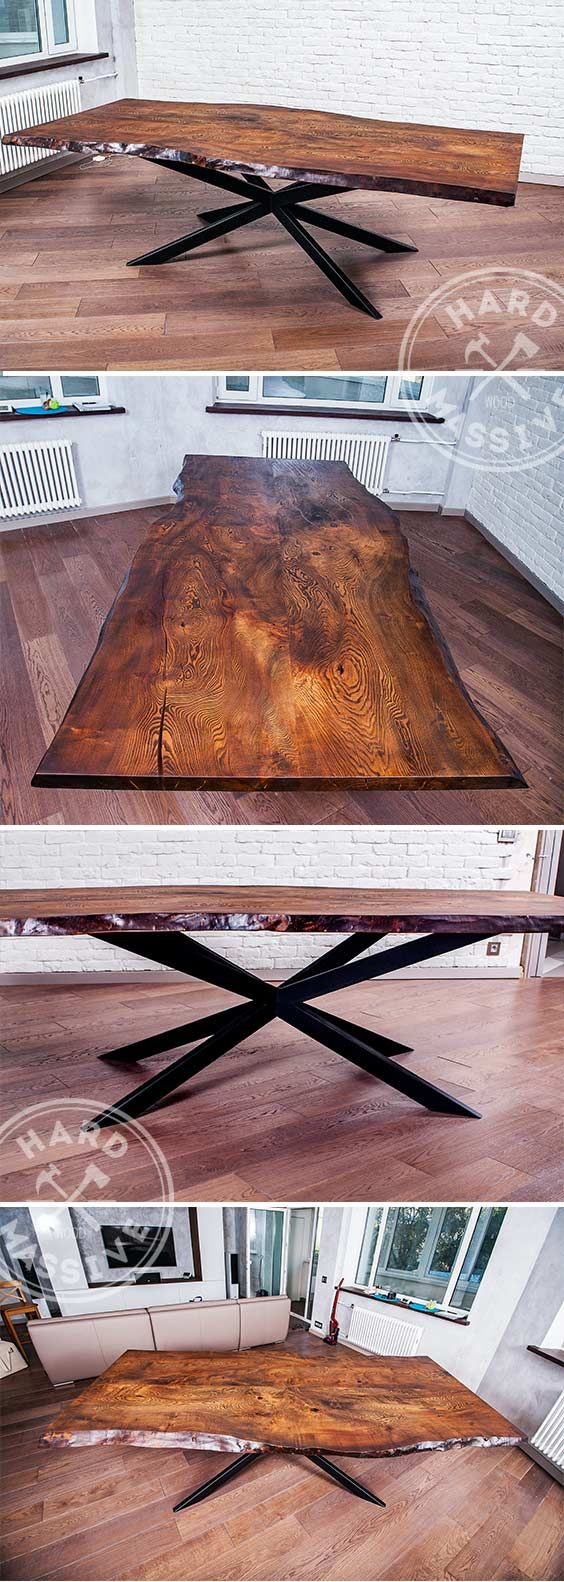 Wood Slab Coffee Table With Jenni Of I Spy Diy Minwax Blog - Table in the modern rustic style large dining table handmade from slab wood chinar with